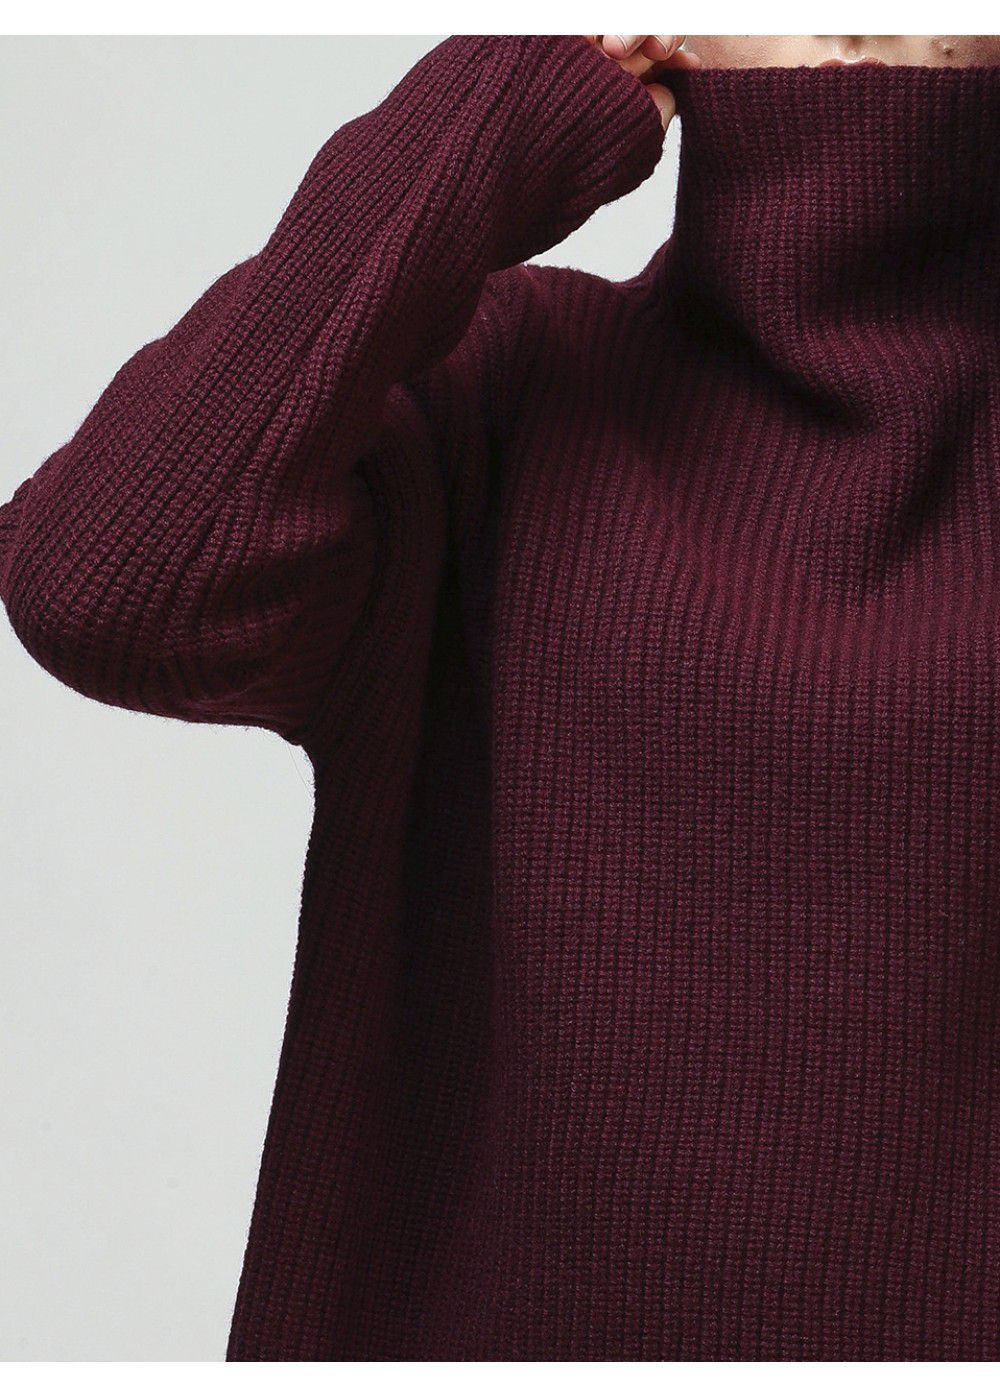 A.L.C. Burgundy Sweater